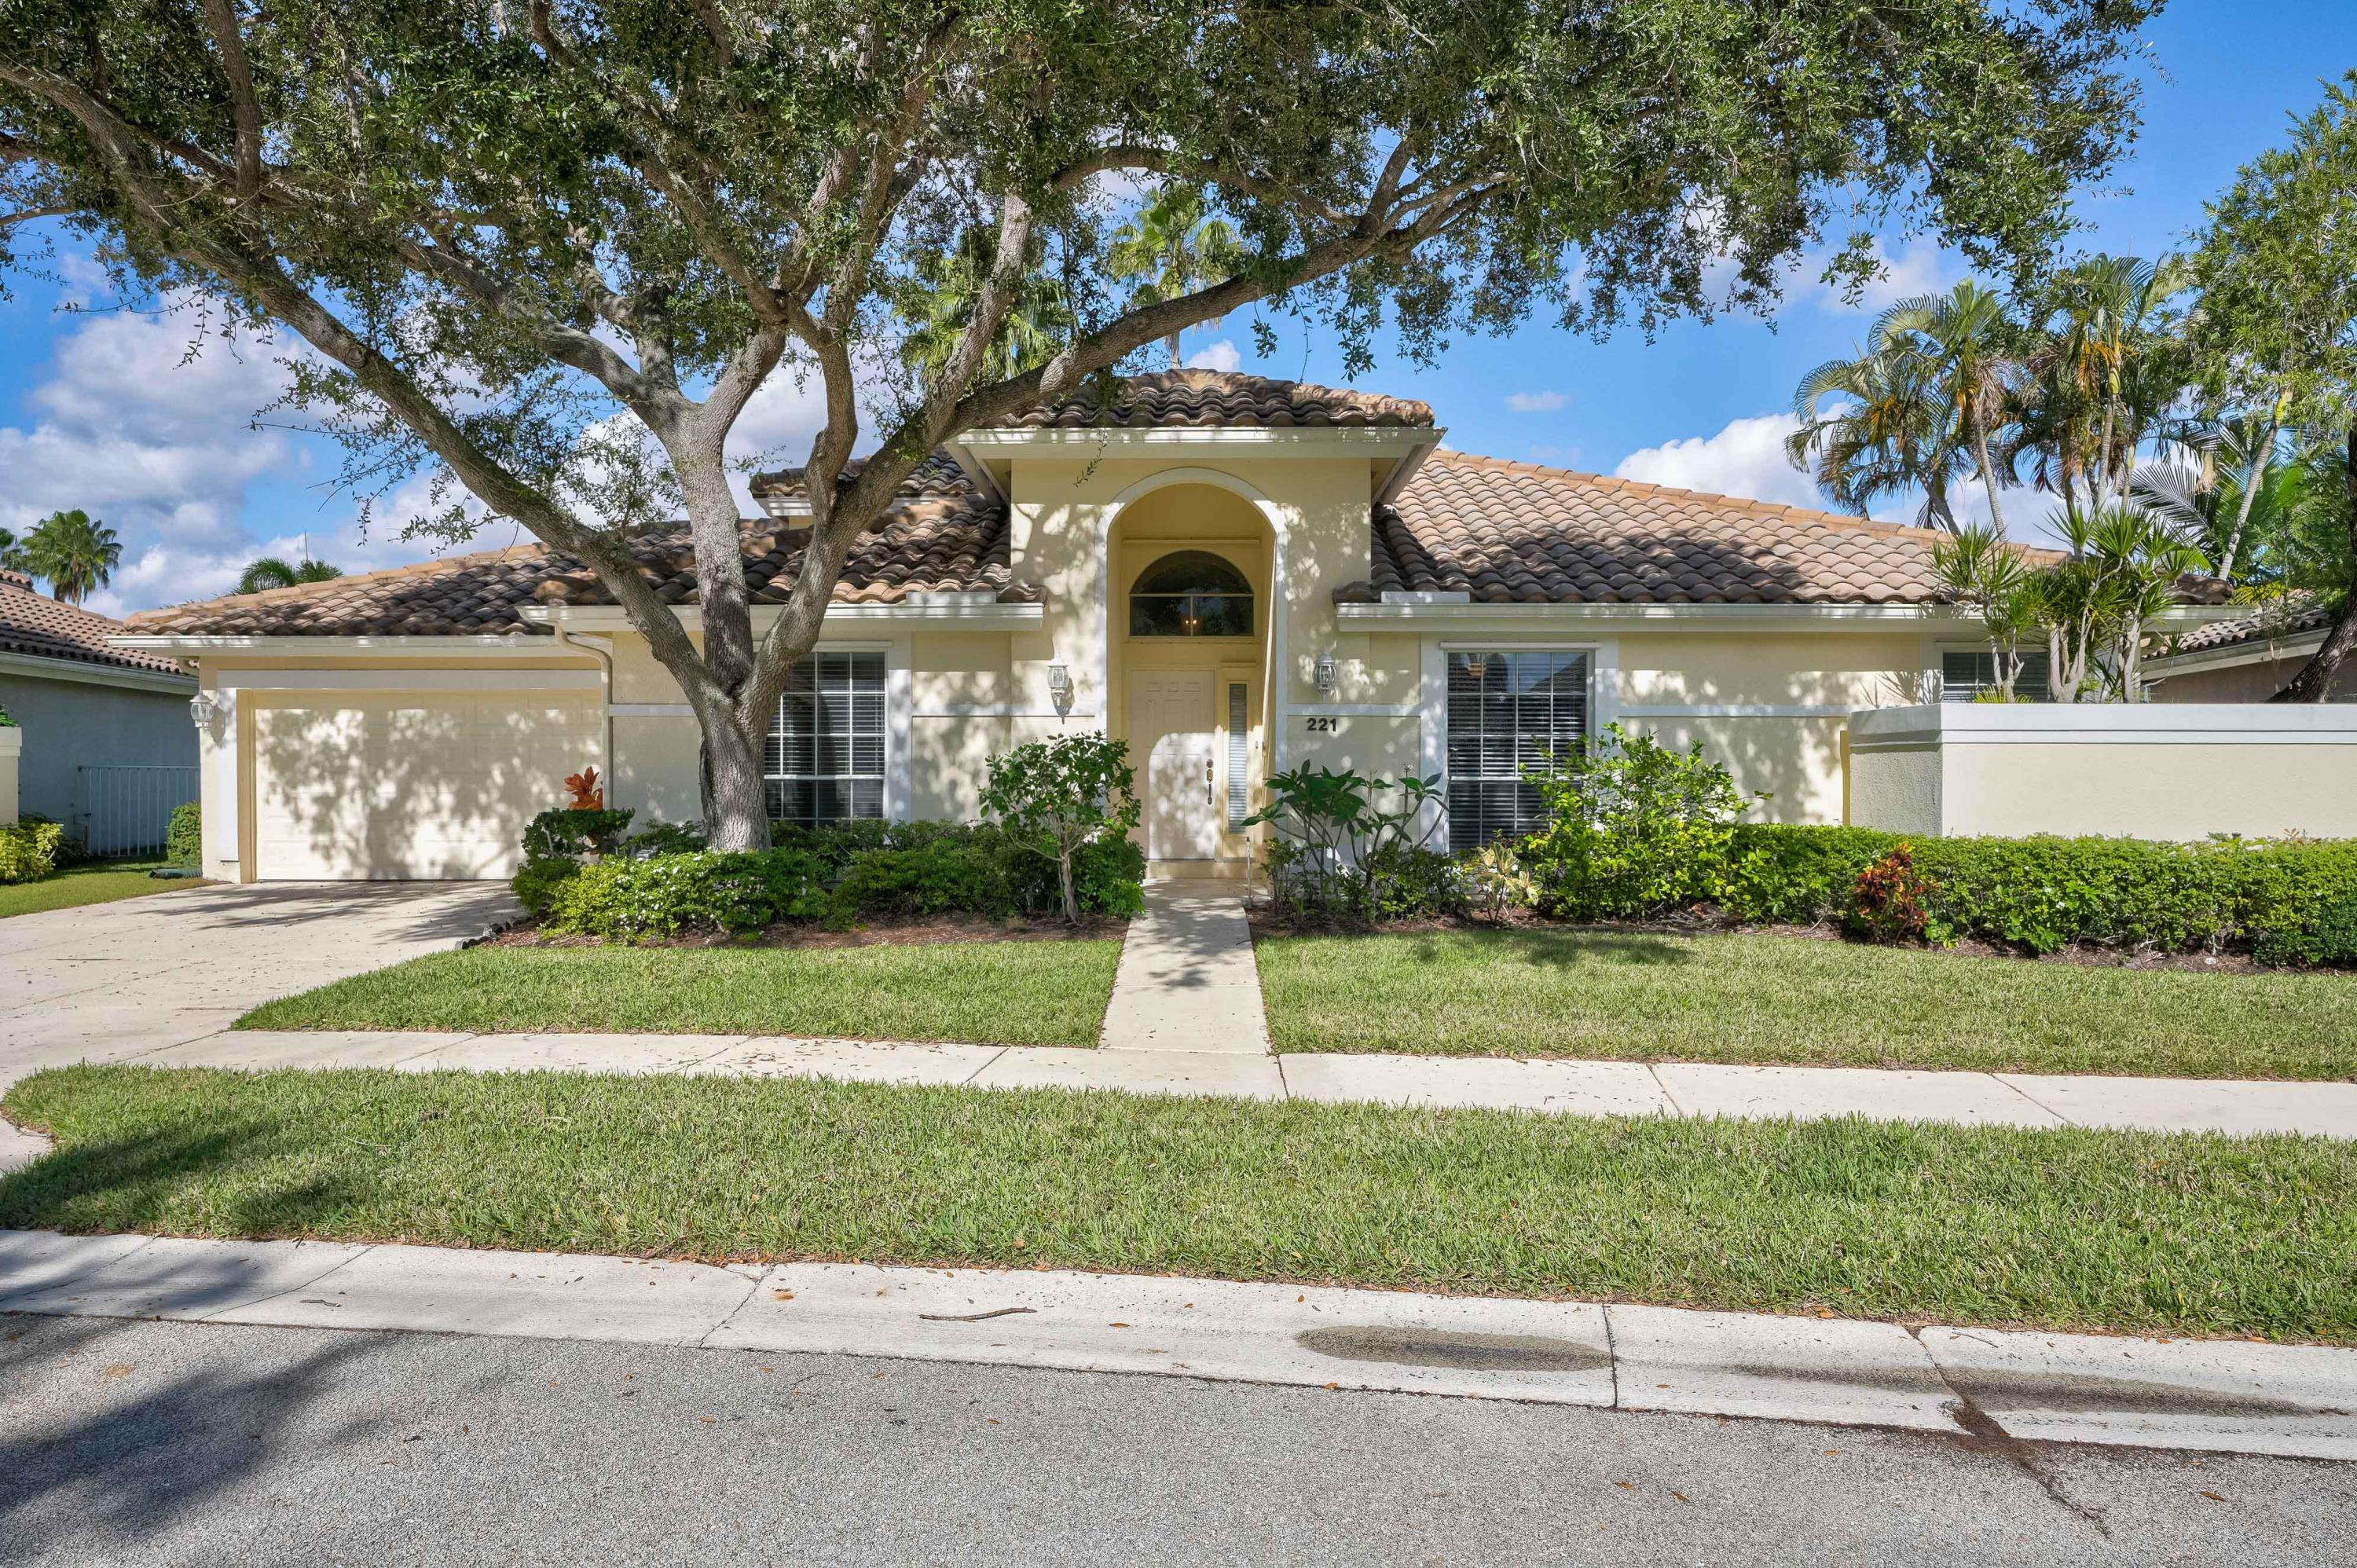 221 Eagleton Lake Boulevard, Palm Beach Gardens, Florida 33418, 3 Bedrooms Bedrooms, ,2.1 BathroomsBathrooms,A,Single family,Eagleton Lake,RX-10493801